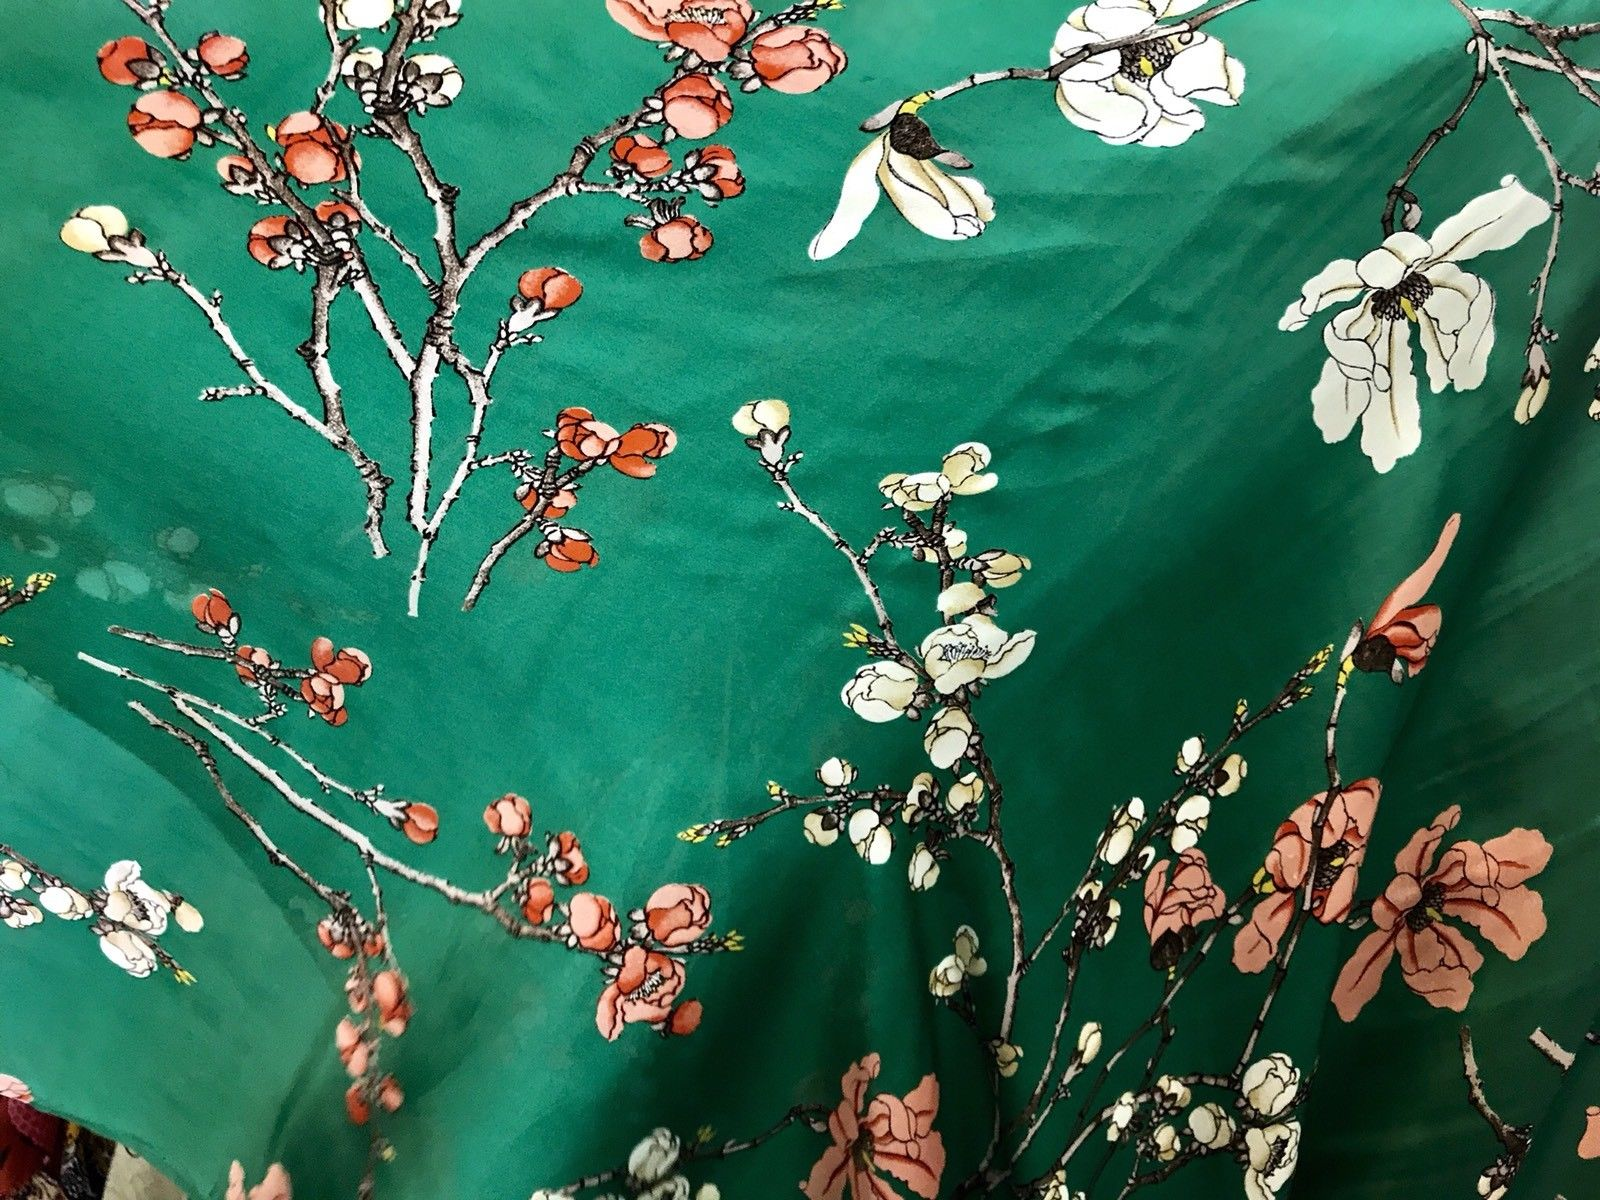 SALE! 100% Silk Charmeuse Kelly Green Cherry Blossom Kimono Dress Fabric - Fancy Styles Fabric Boutique